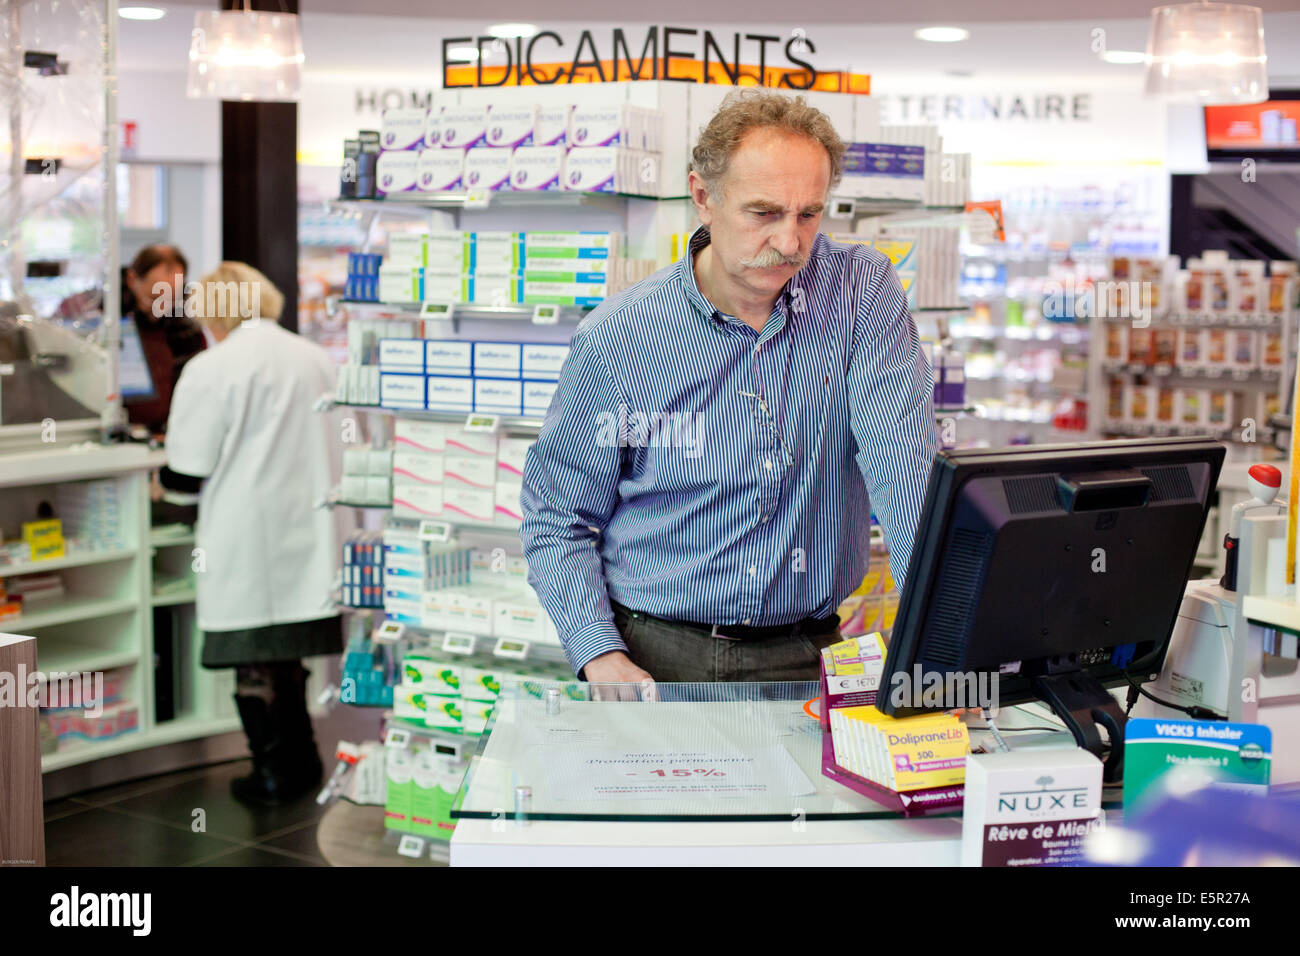 Pharmacist using a computer. - Stock Image